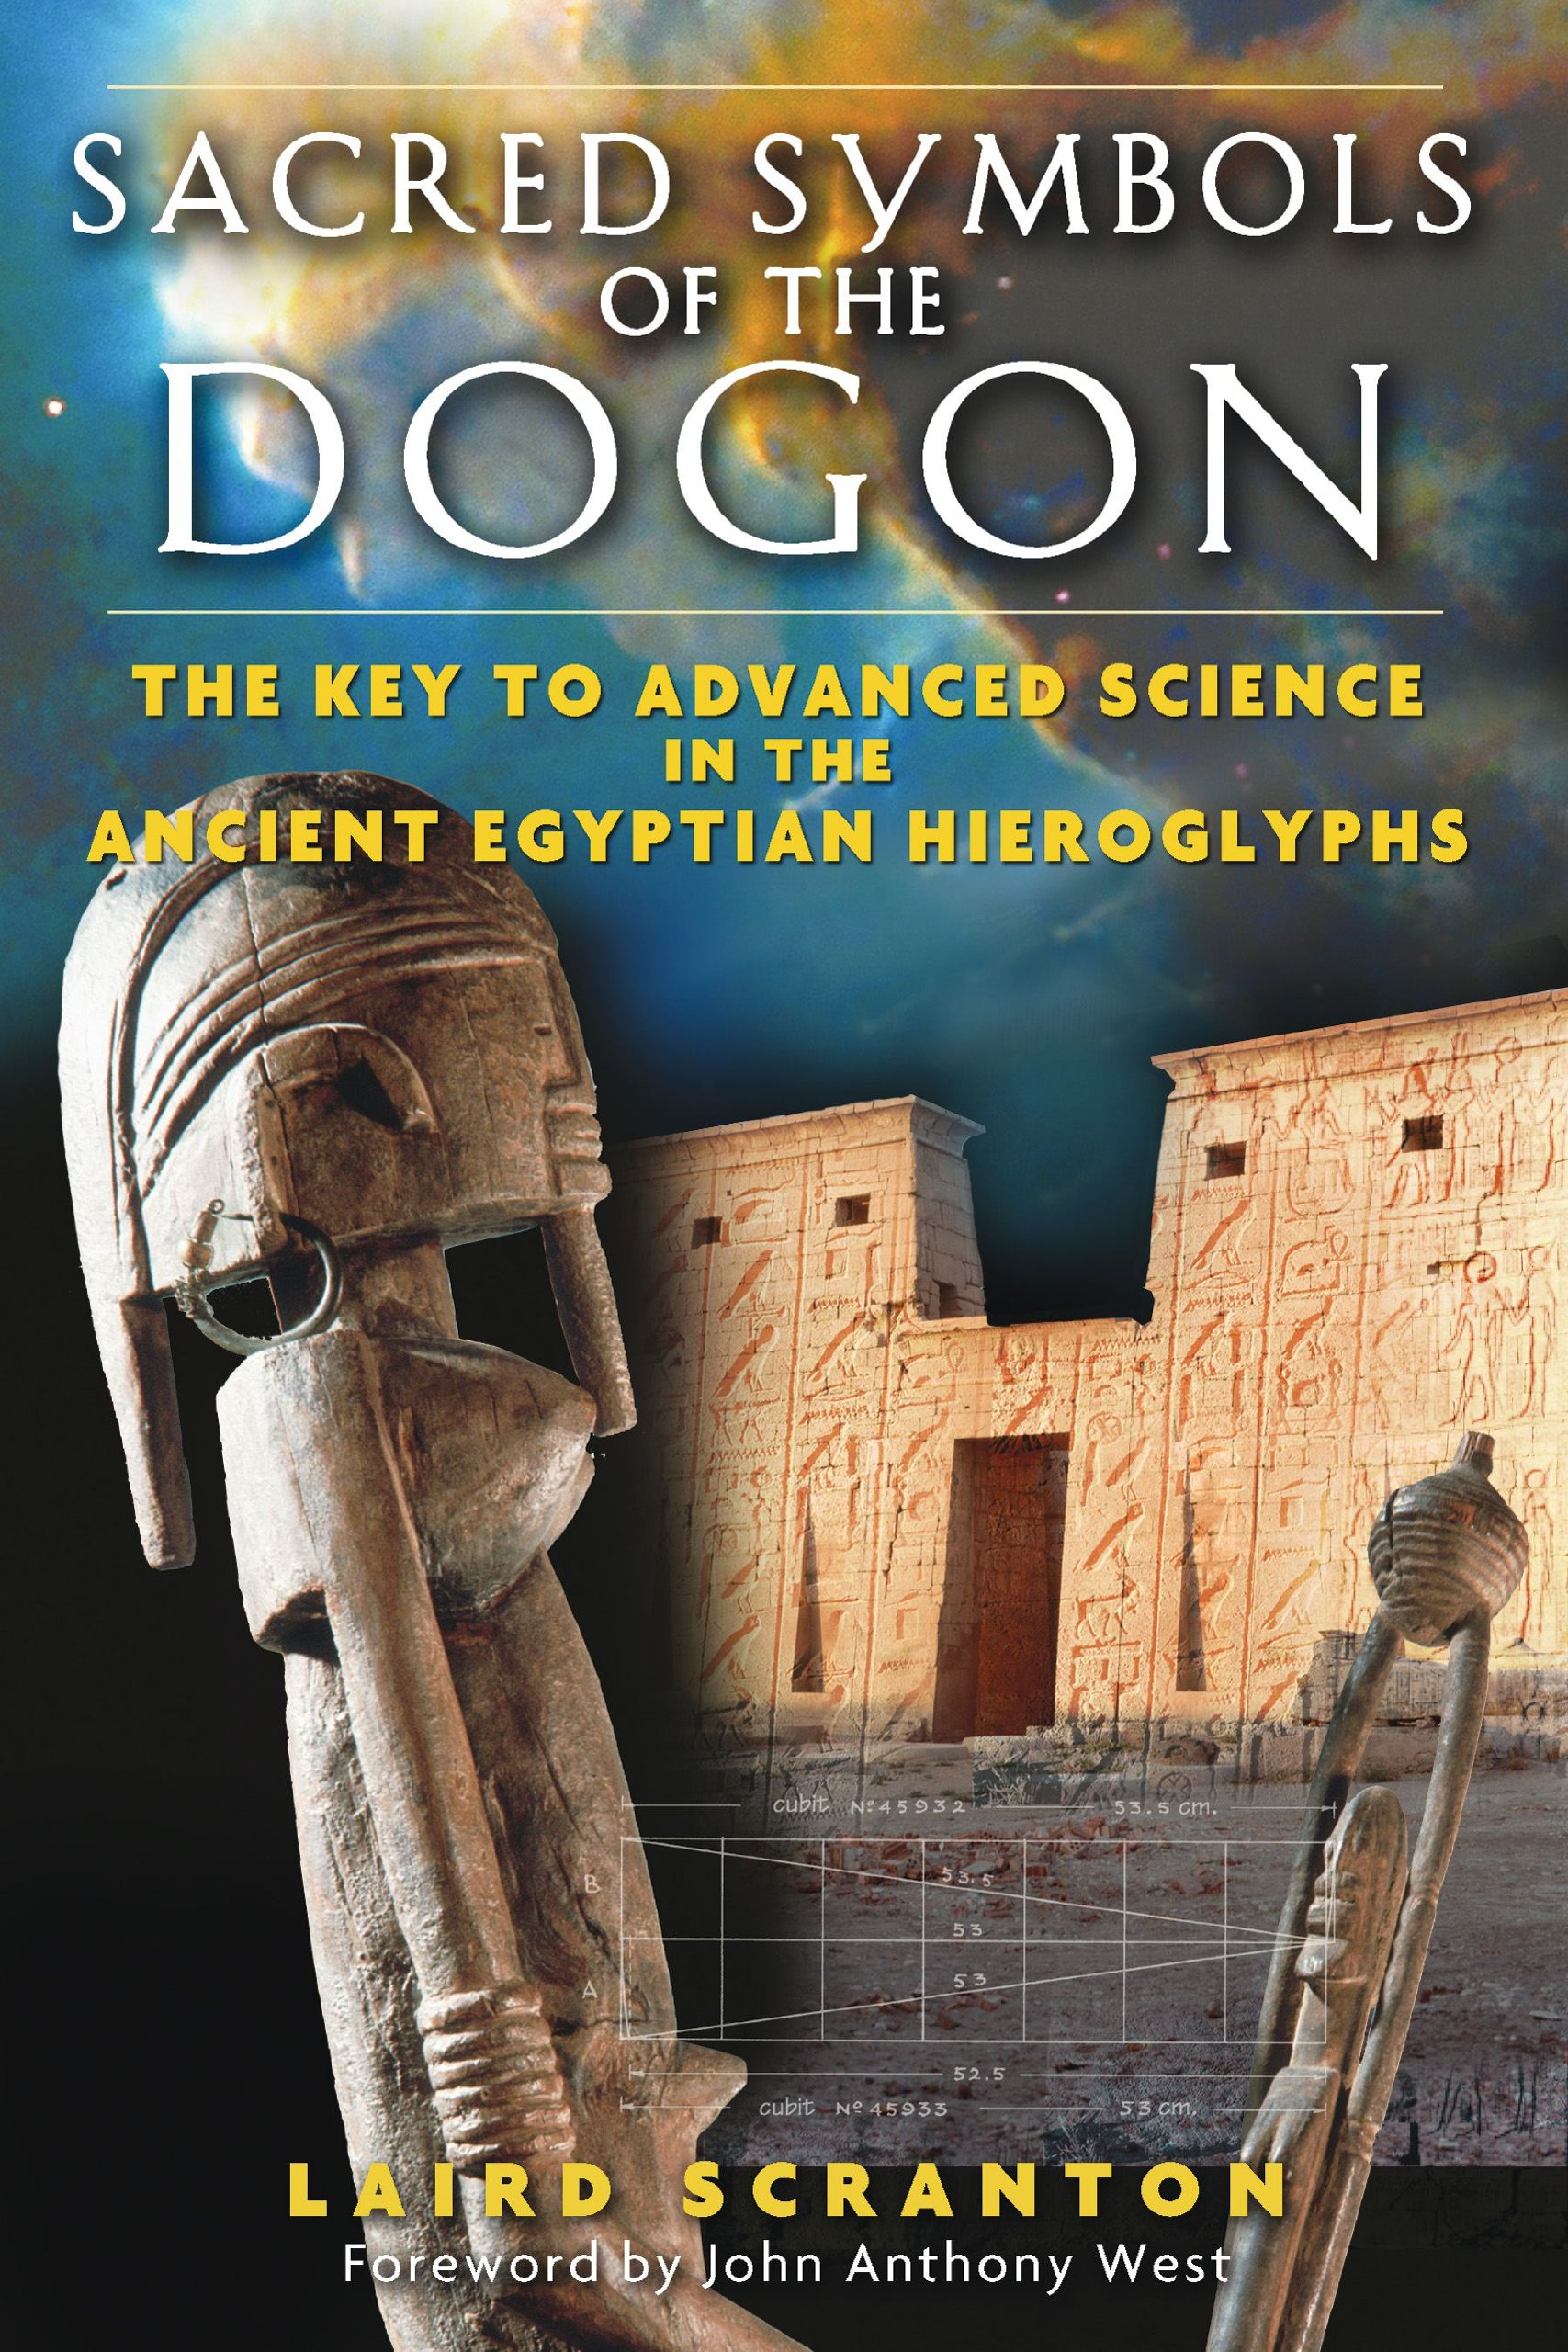 sacred-symbols-of-the-dogon-the-key-to-advanced-science-in-the-ancient-egyptian-hieroglyphs